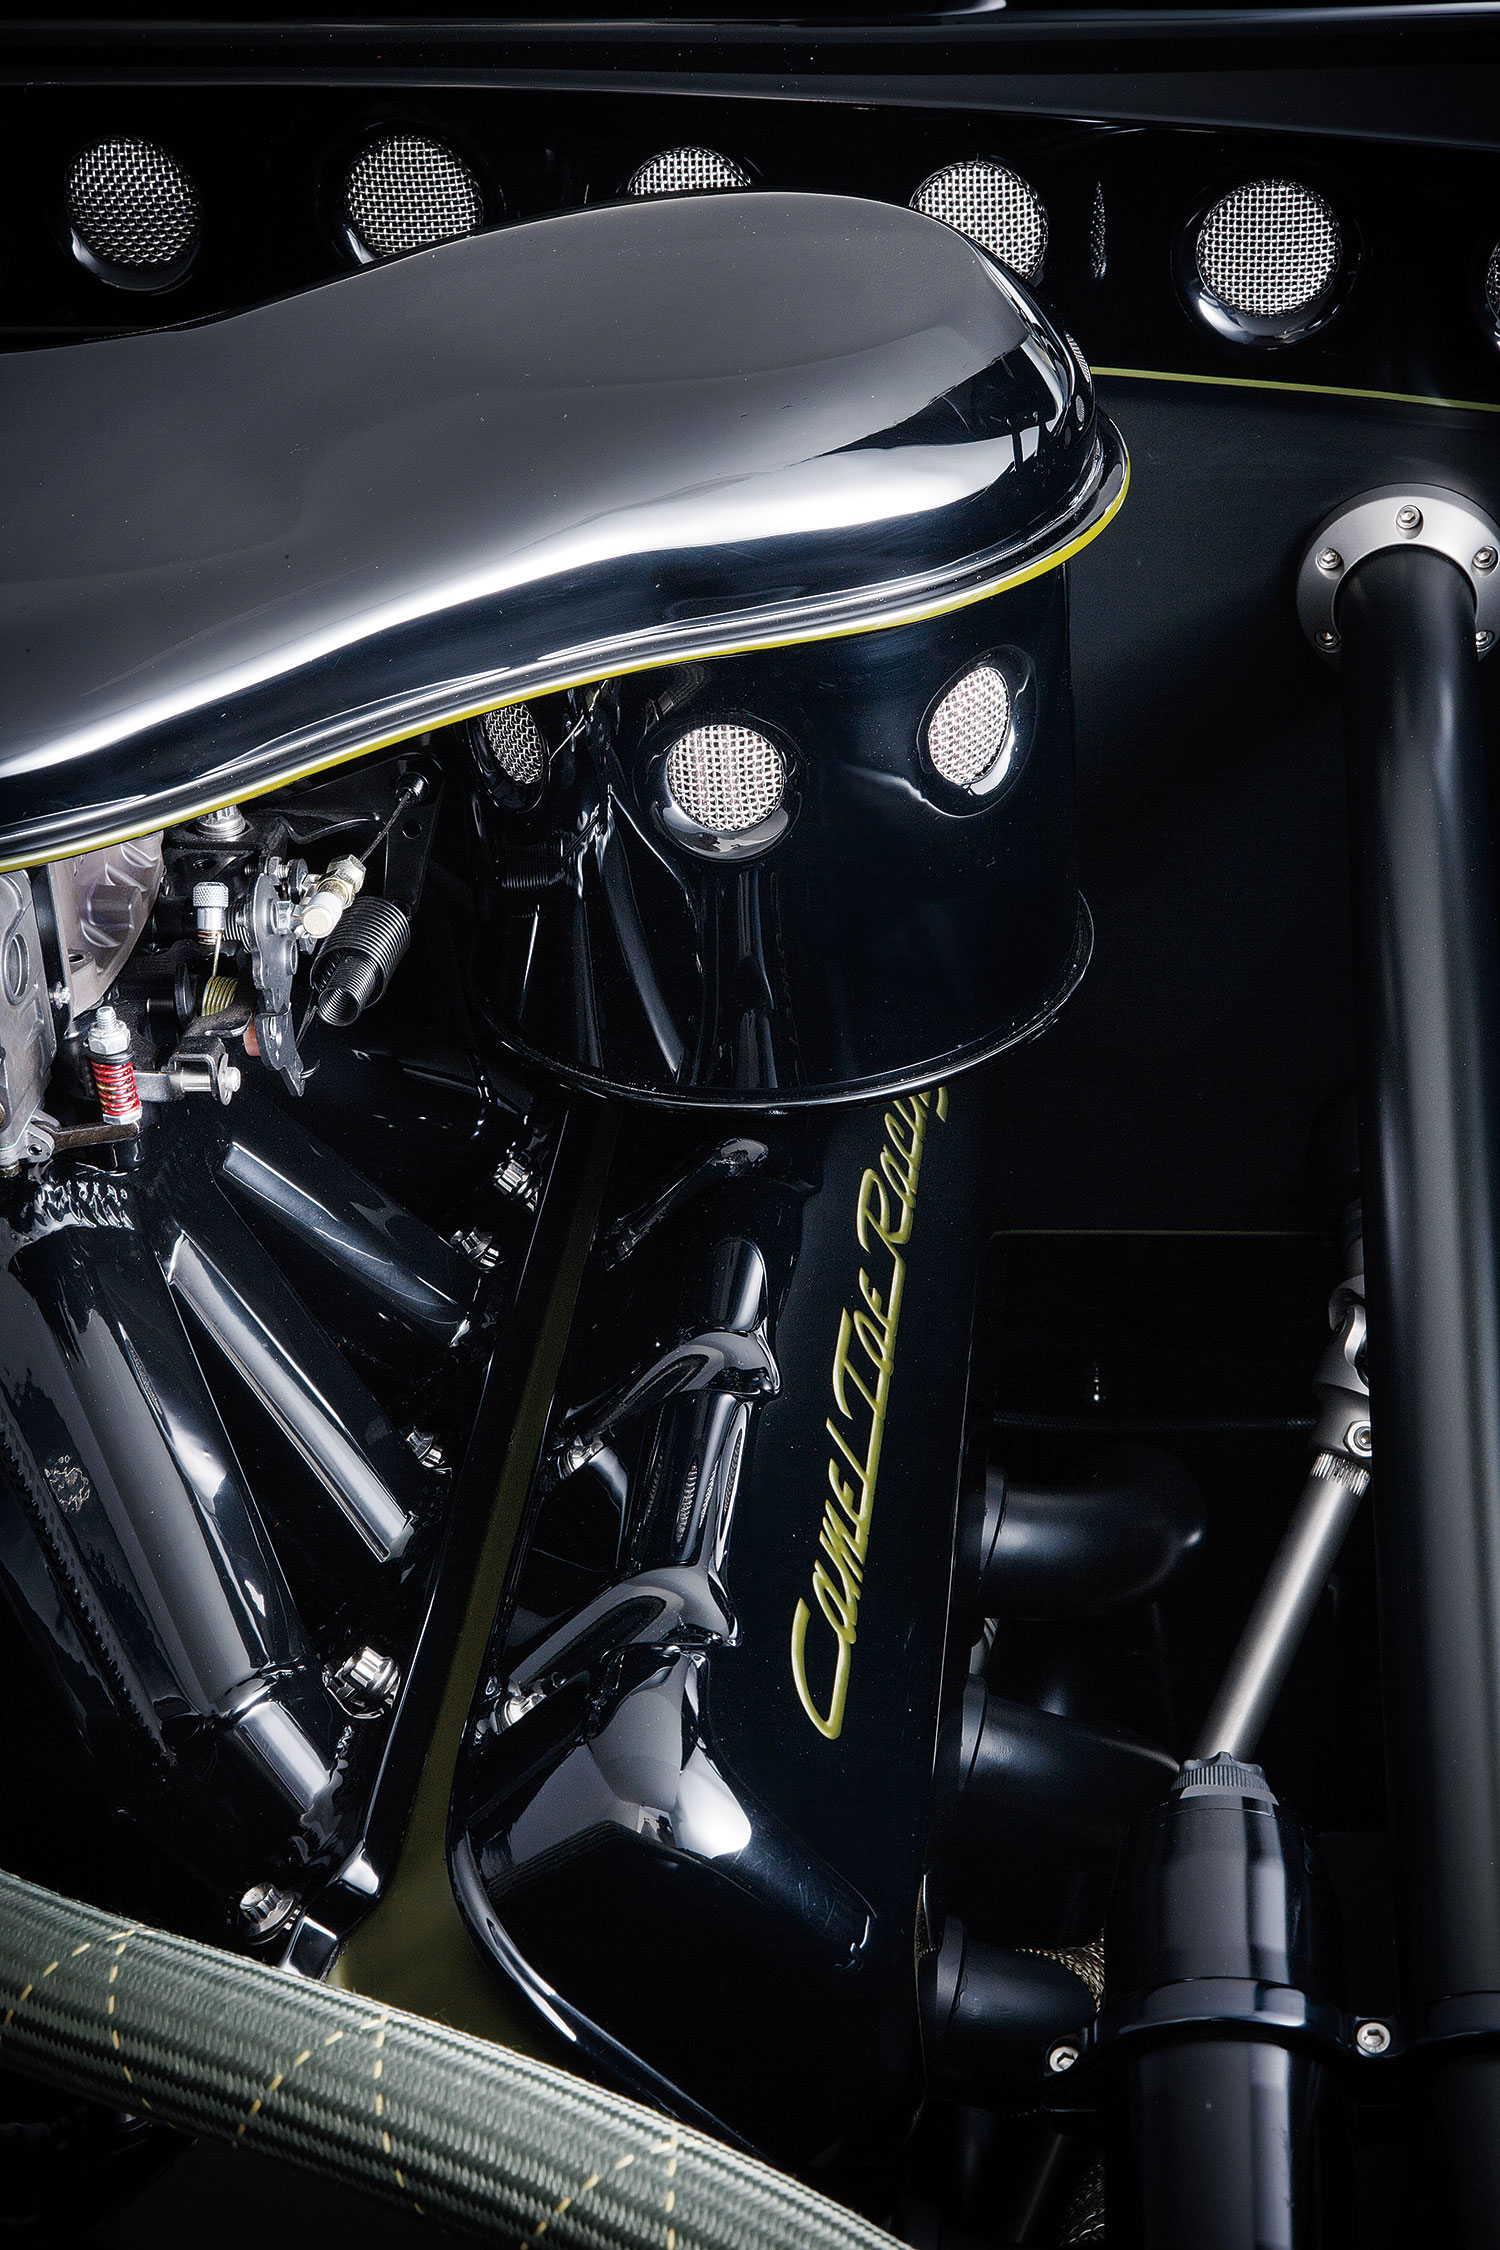 Reminiscent of an early oil bath air cleaner, the Kemp's-fabricated piece is a work of art that grabs the air from the cowl area beneath the windshield.